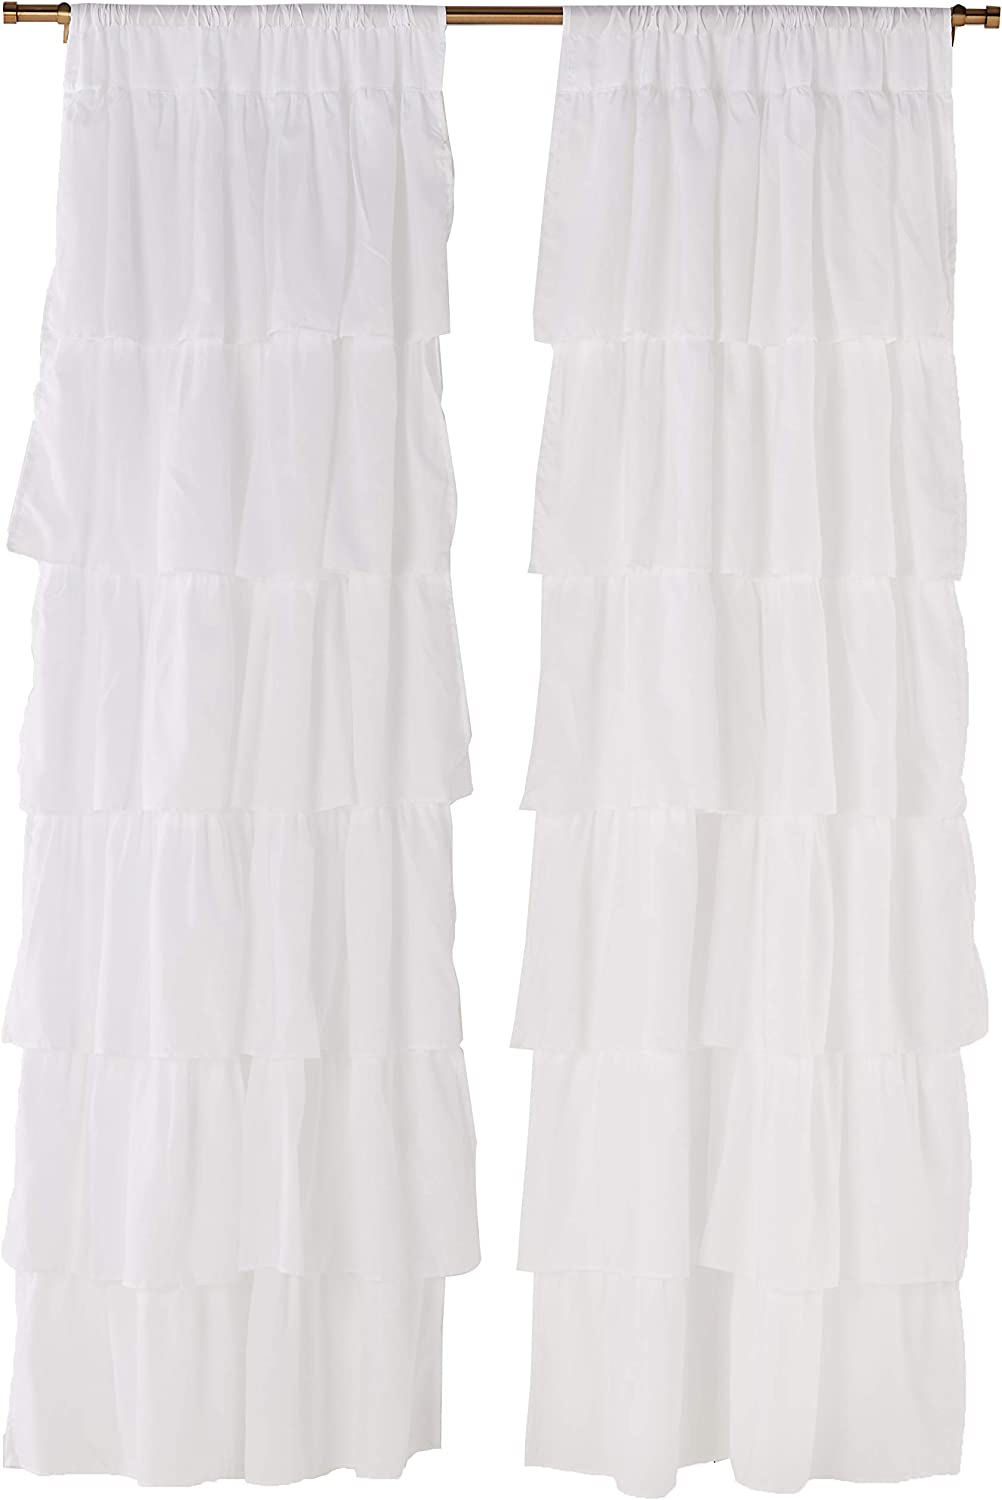 "Dainty Home Layers Pleated Rod Pocket with Header Curtain Panel Pair Set of 2, 38"" x 84"" Each (Total 76""x84""), Ruffled Crisp White, 2 Count"